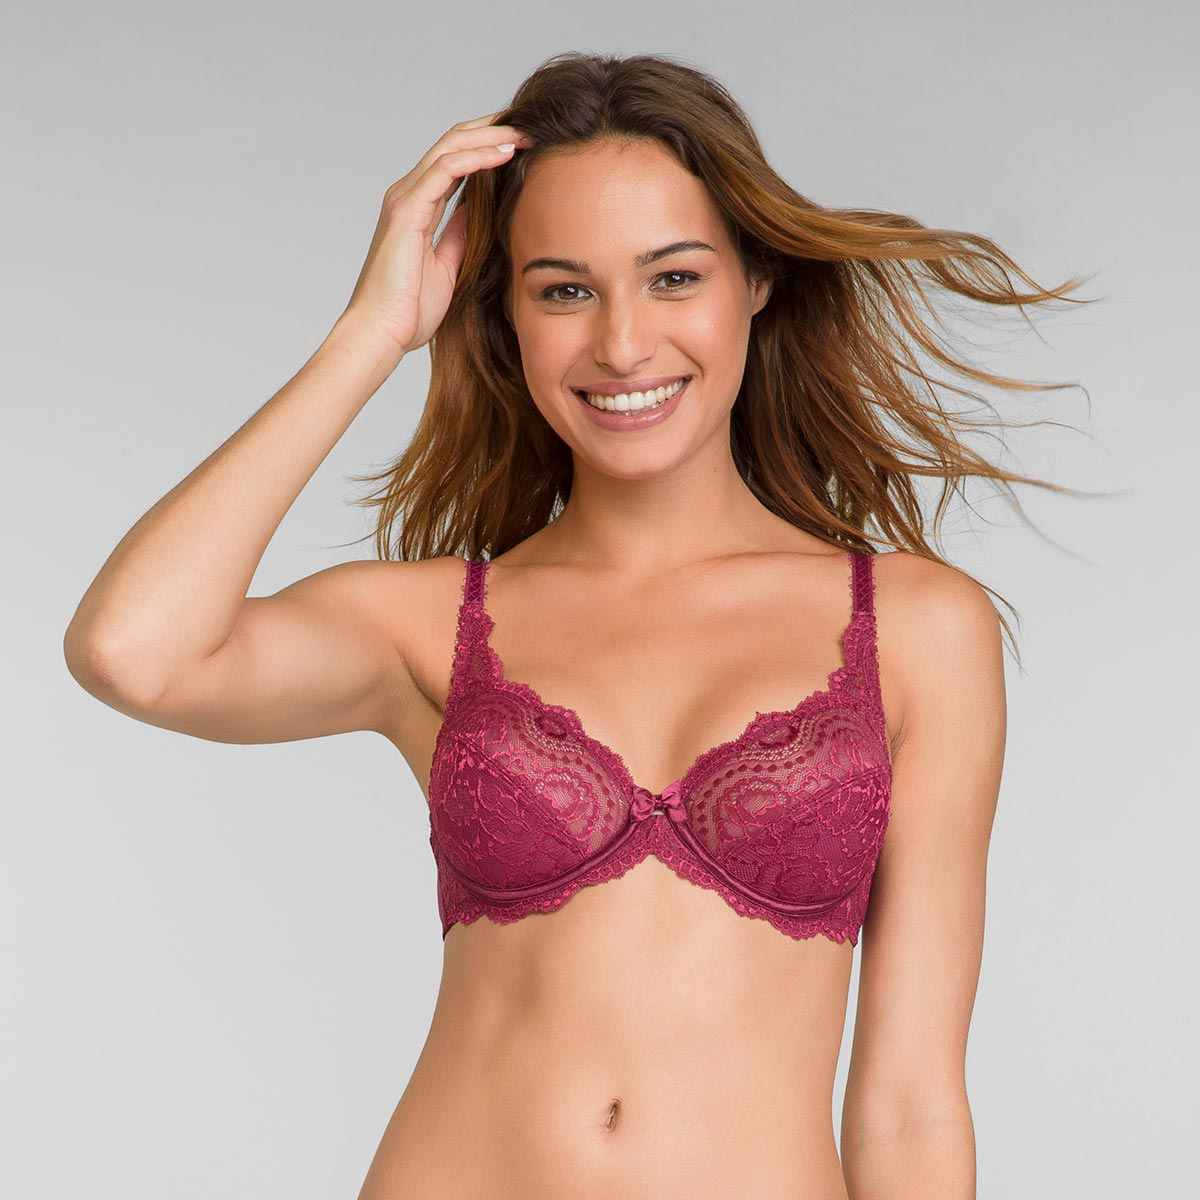 Full Cup Lace Bra in Romance Red Flower Elegance, , PLAYTEX